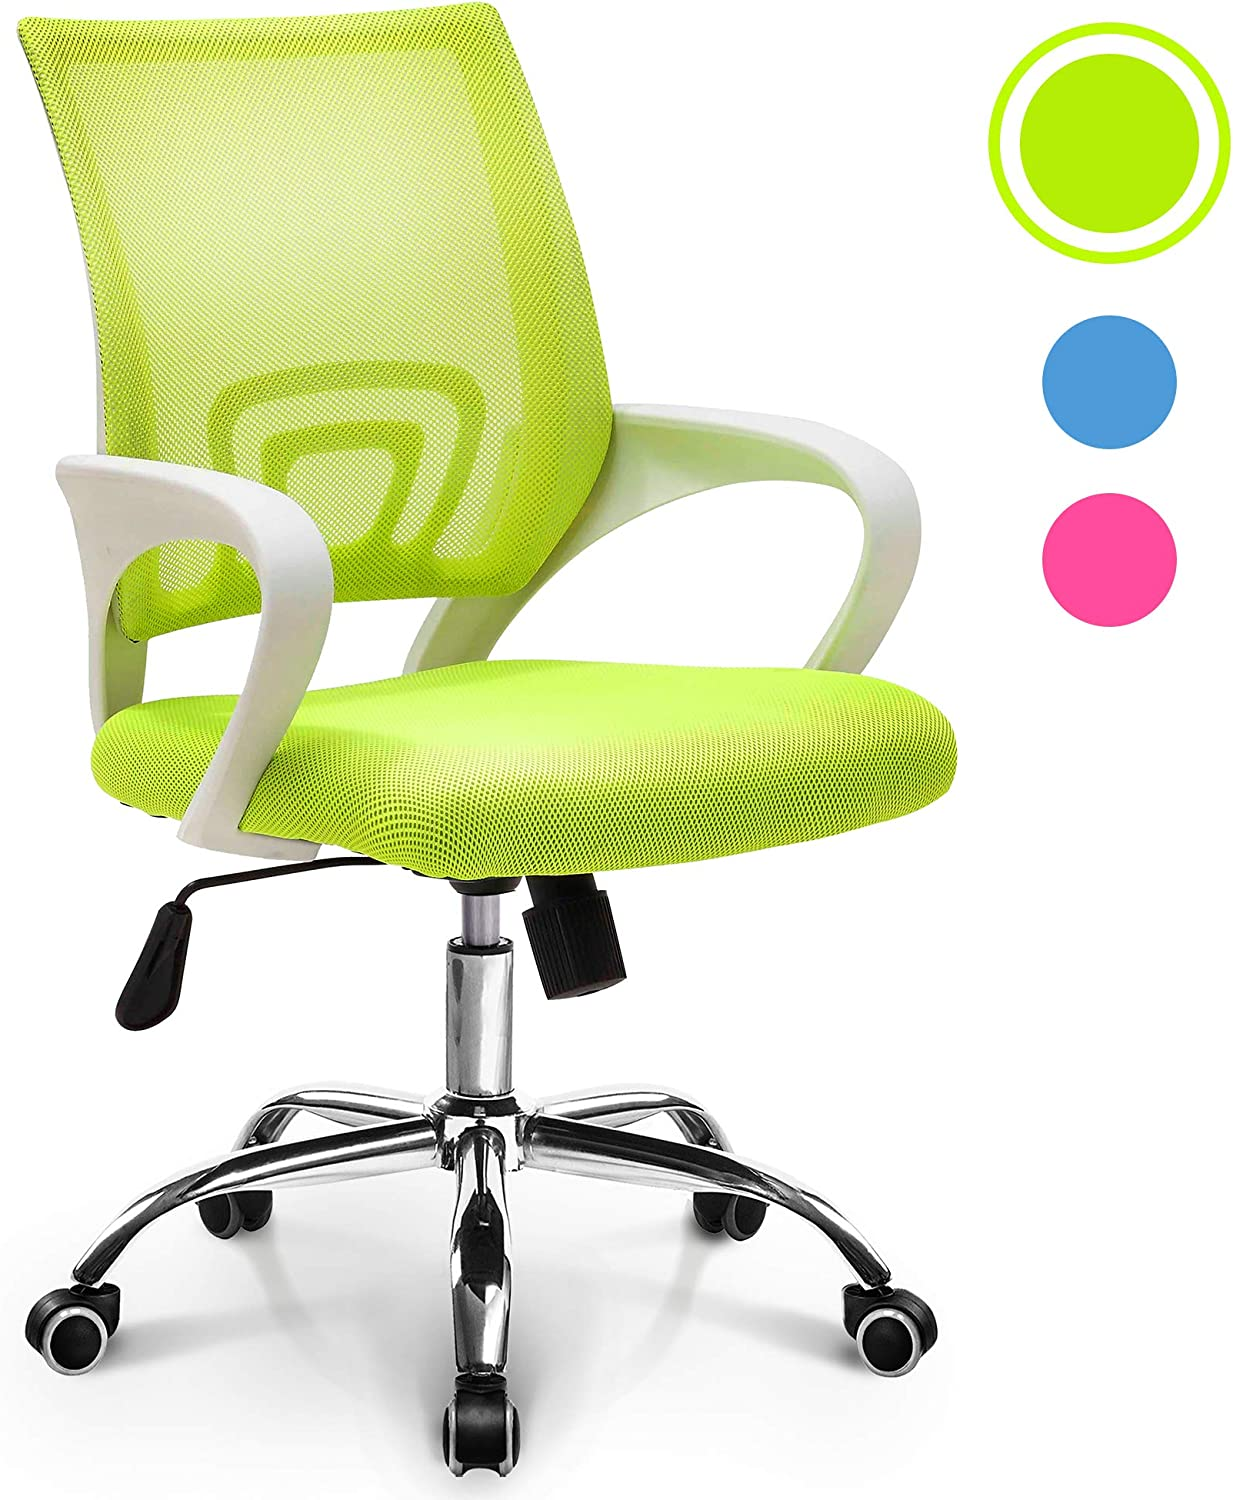 NEO CHAIR Office Chair Computer Desk Chair Gaming - Ergonomic Mid Back Cushion Lumbar Support with Wheels Comfortable Light Green Mesh Racing Seat Adjustable Swivel Rolling Home Executive